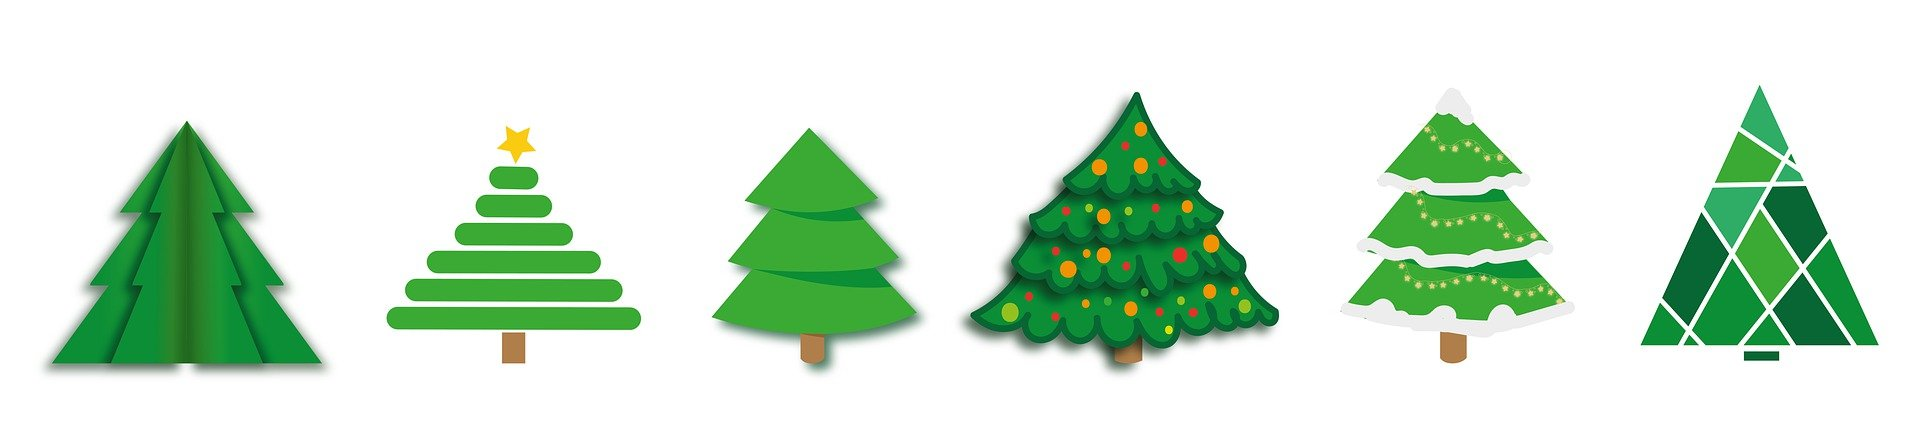 Image of four Christmas trees in a line